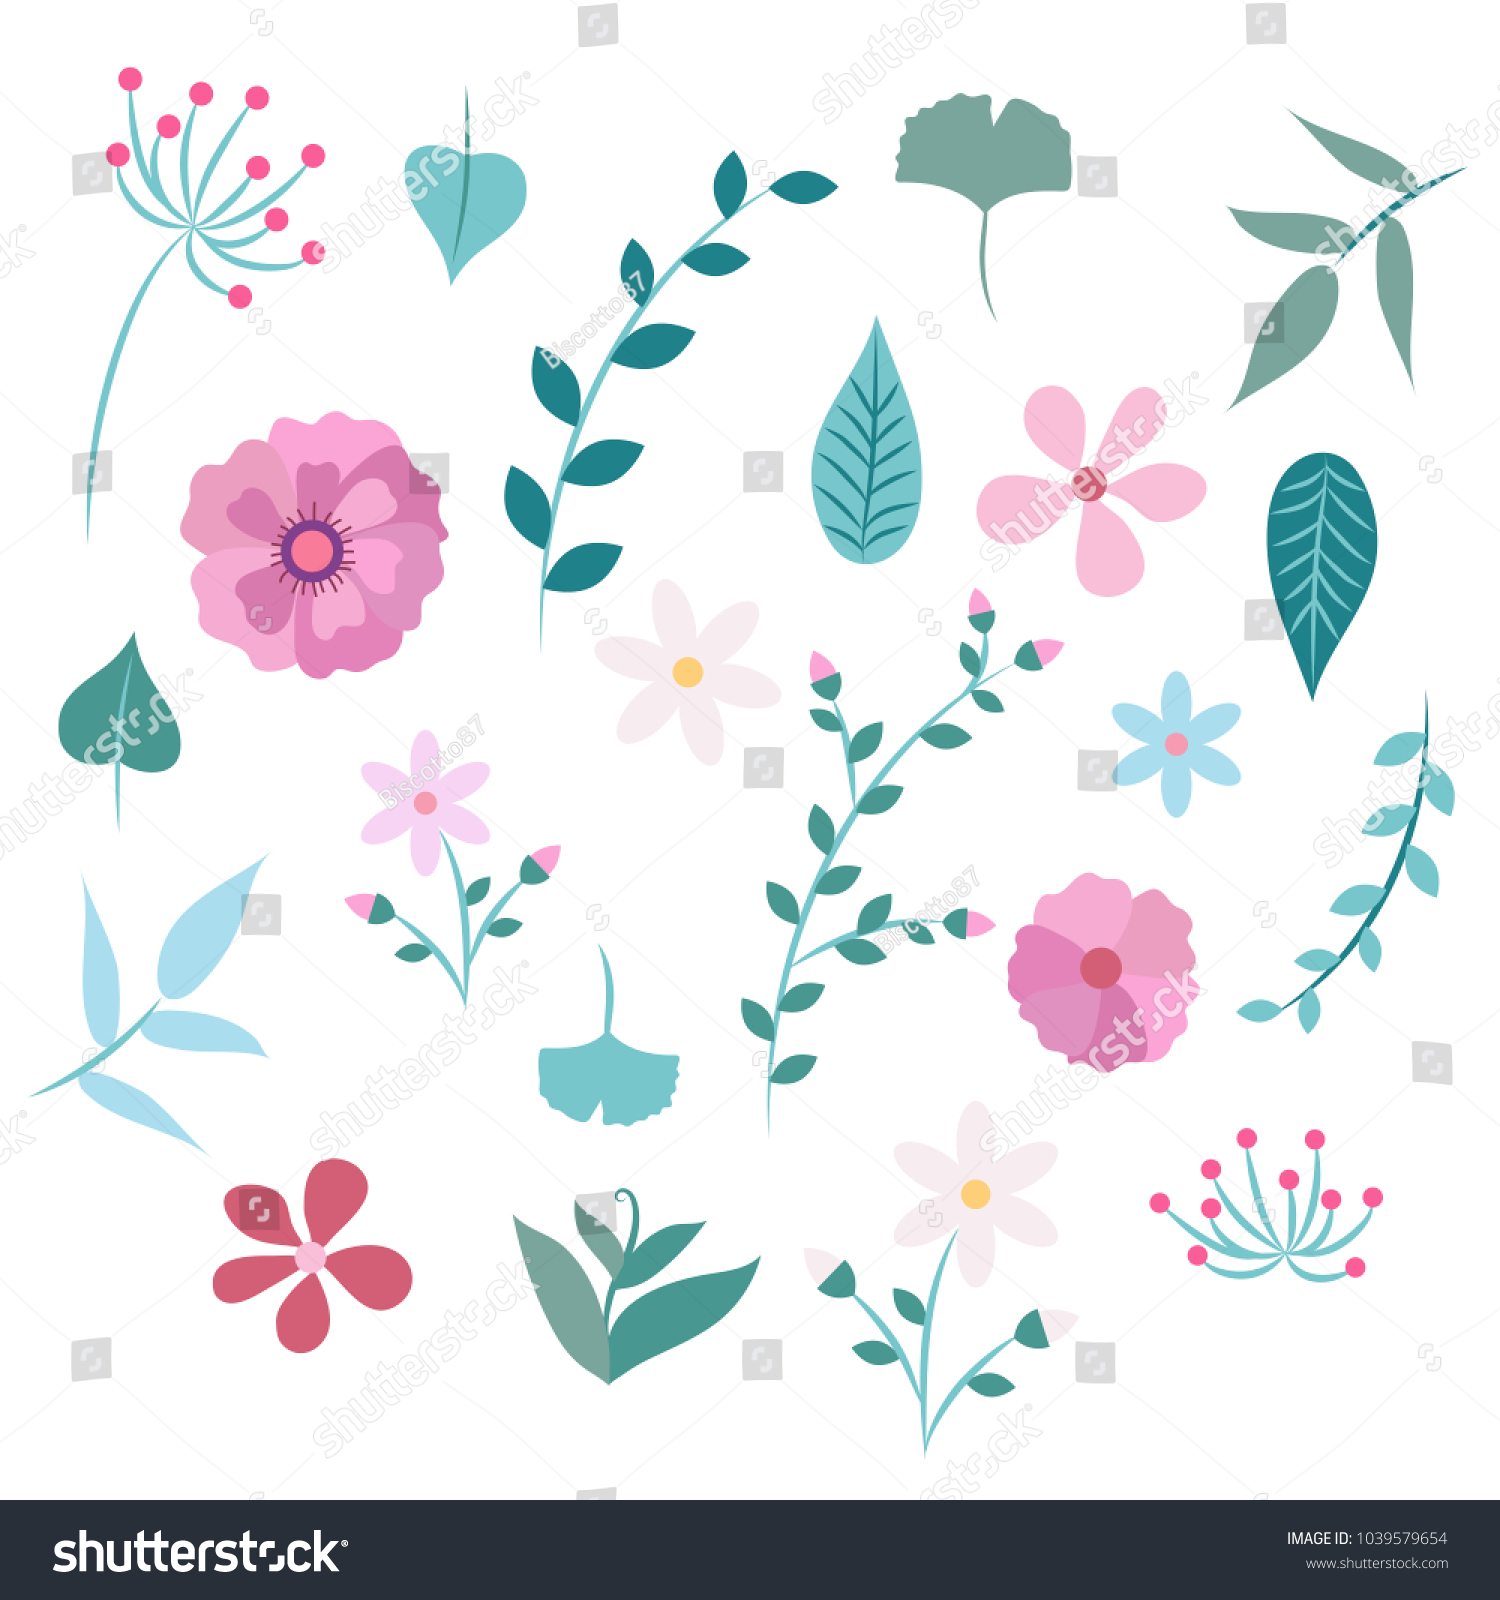 Spring Flowers And Leaves Seamless Pattern Different Types Of